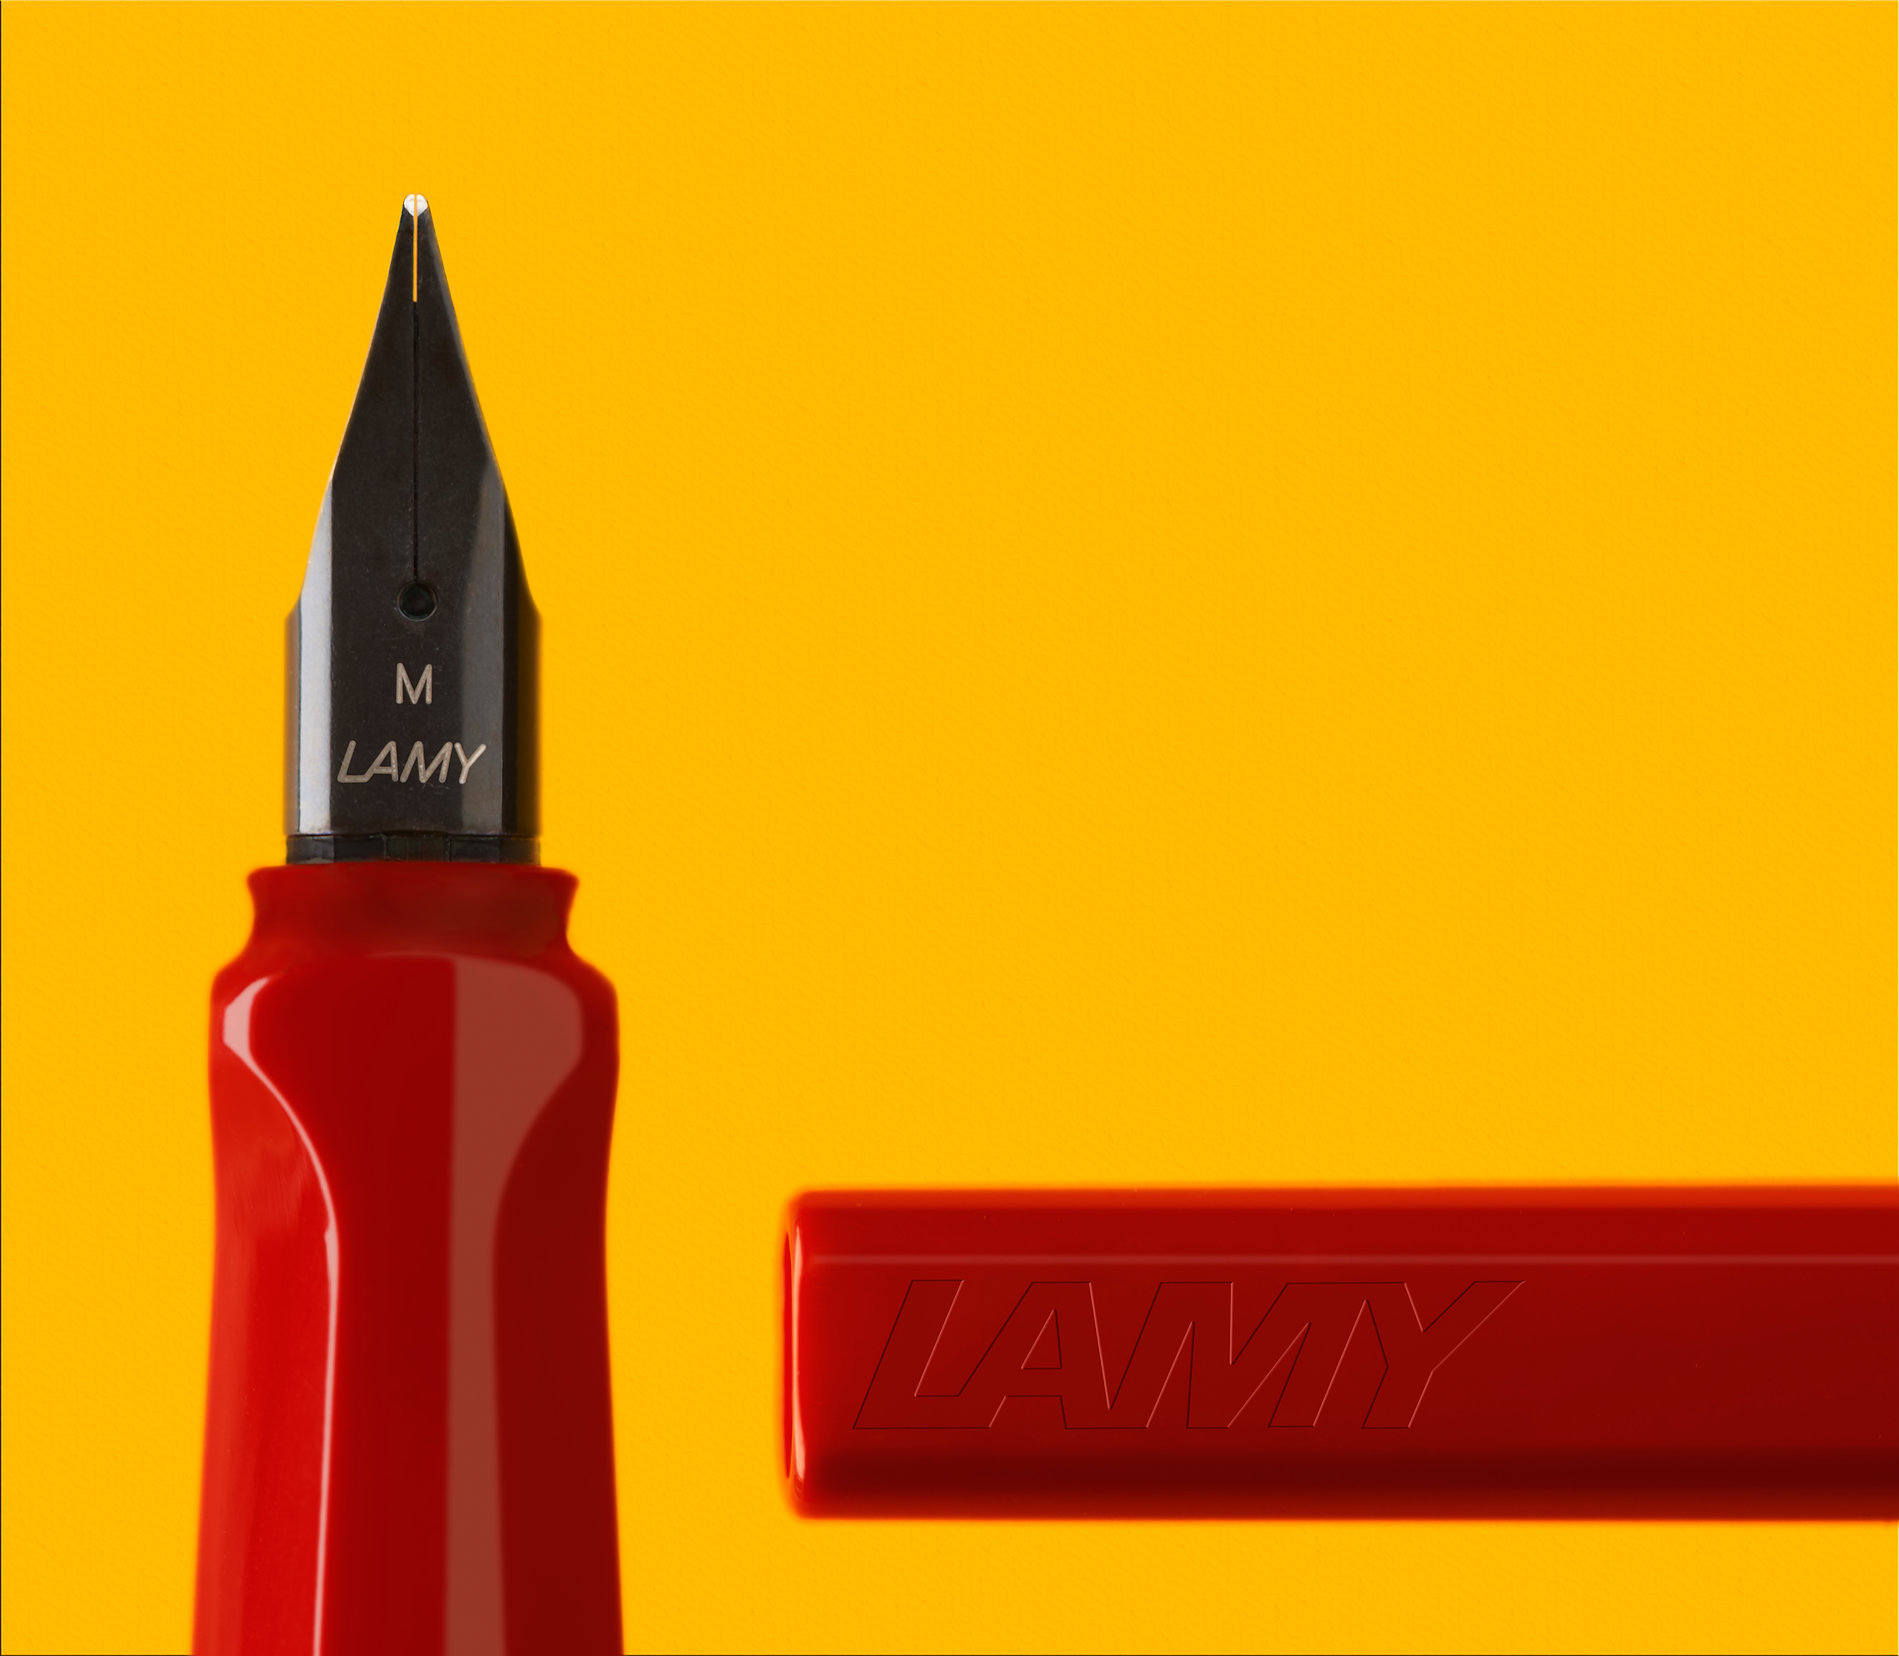 lamy6 flat sharp.jpg